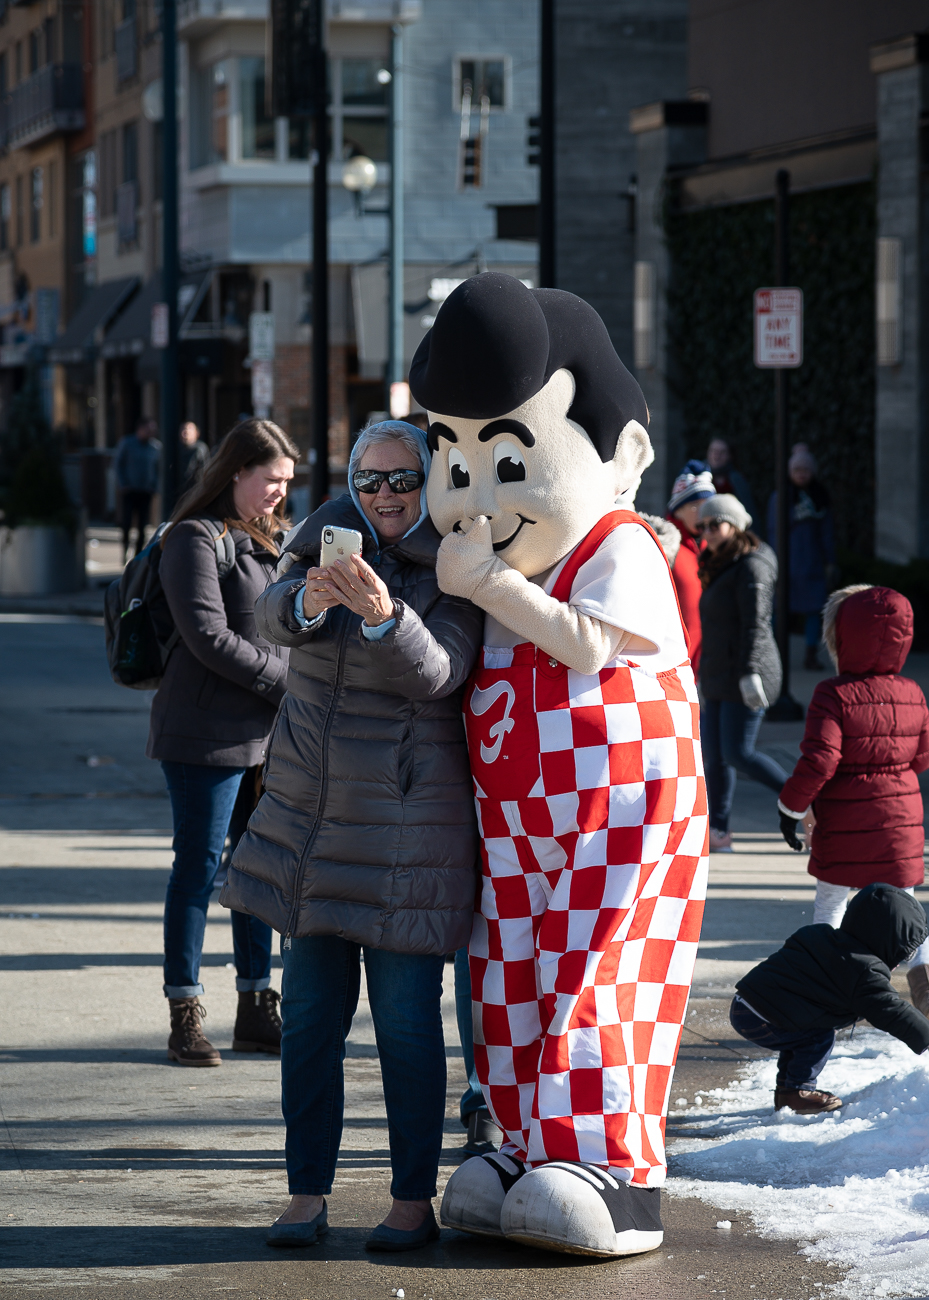 Gettin' a selfie with Big Boy / Image: Phil Armstrong, Cincinnati Refined // Published: 1.6.20